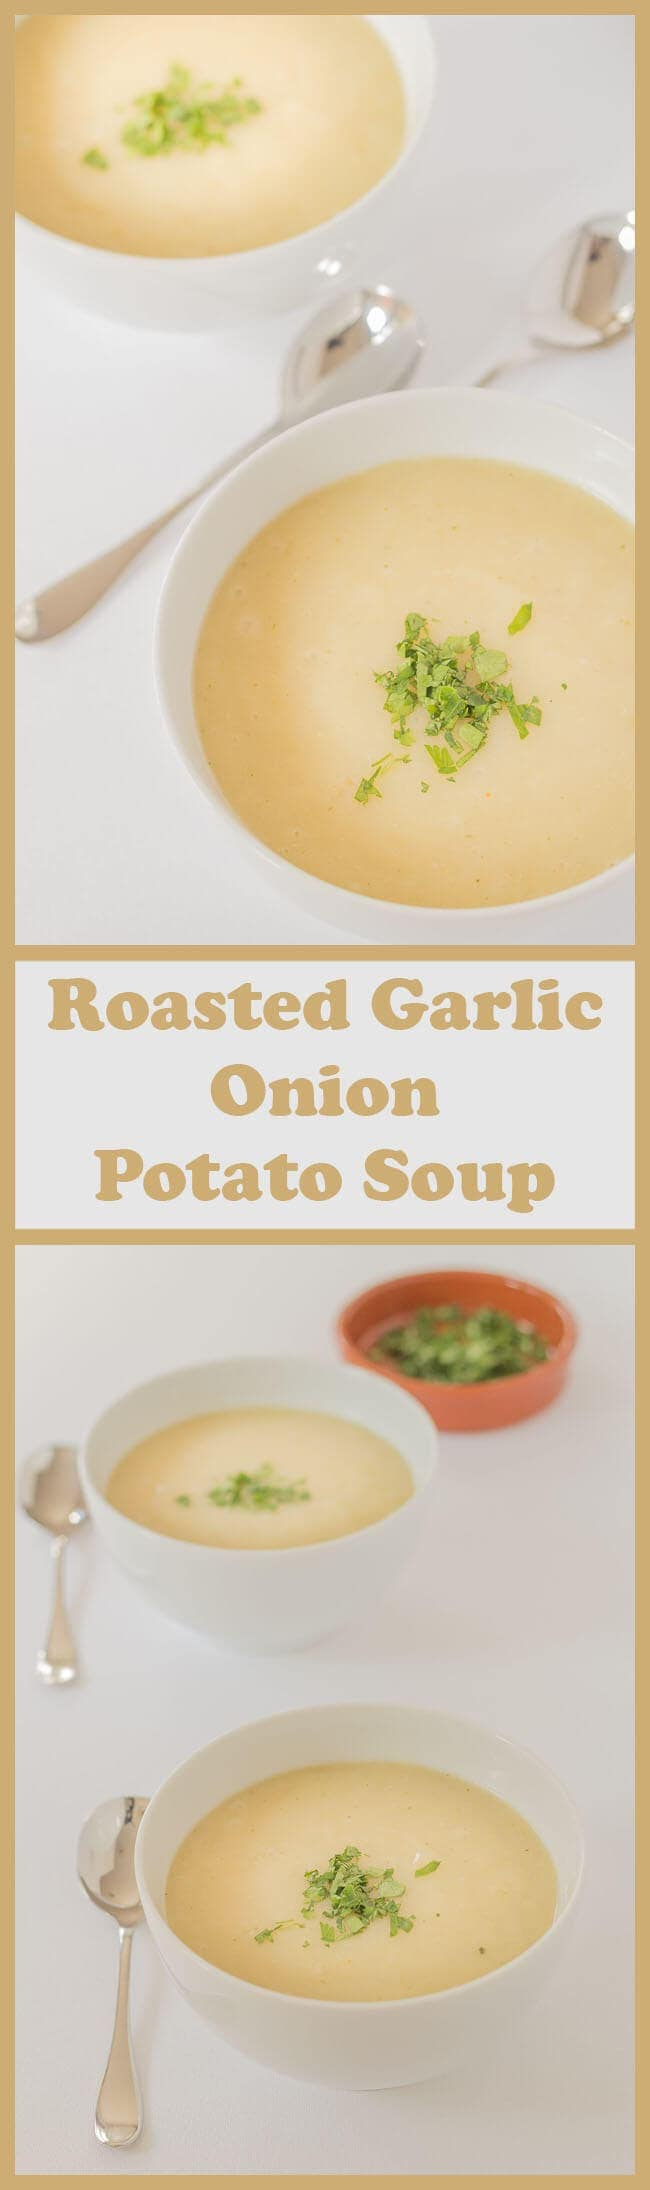 This roasted garlic onion potato soup is made from 6 ingredients, it's vegan and is a perfect way to use up surplus potatoes. It's an easy, tasty variation of the classic potato soup recipe, adding a bit of a twist with the roasted garlic, and it all comes together as a bowl of simple, low cost nourishment! #neilshealthymeals #garlicsoup #onionsoup #potatosoup #vegansoup #glutenfreesoup